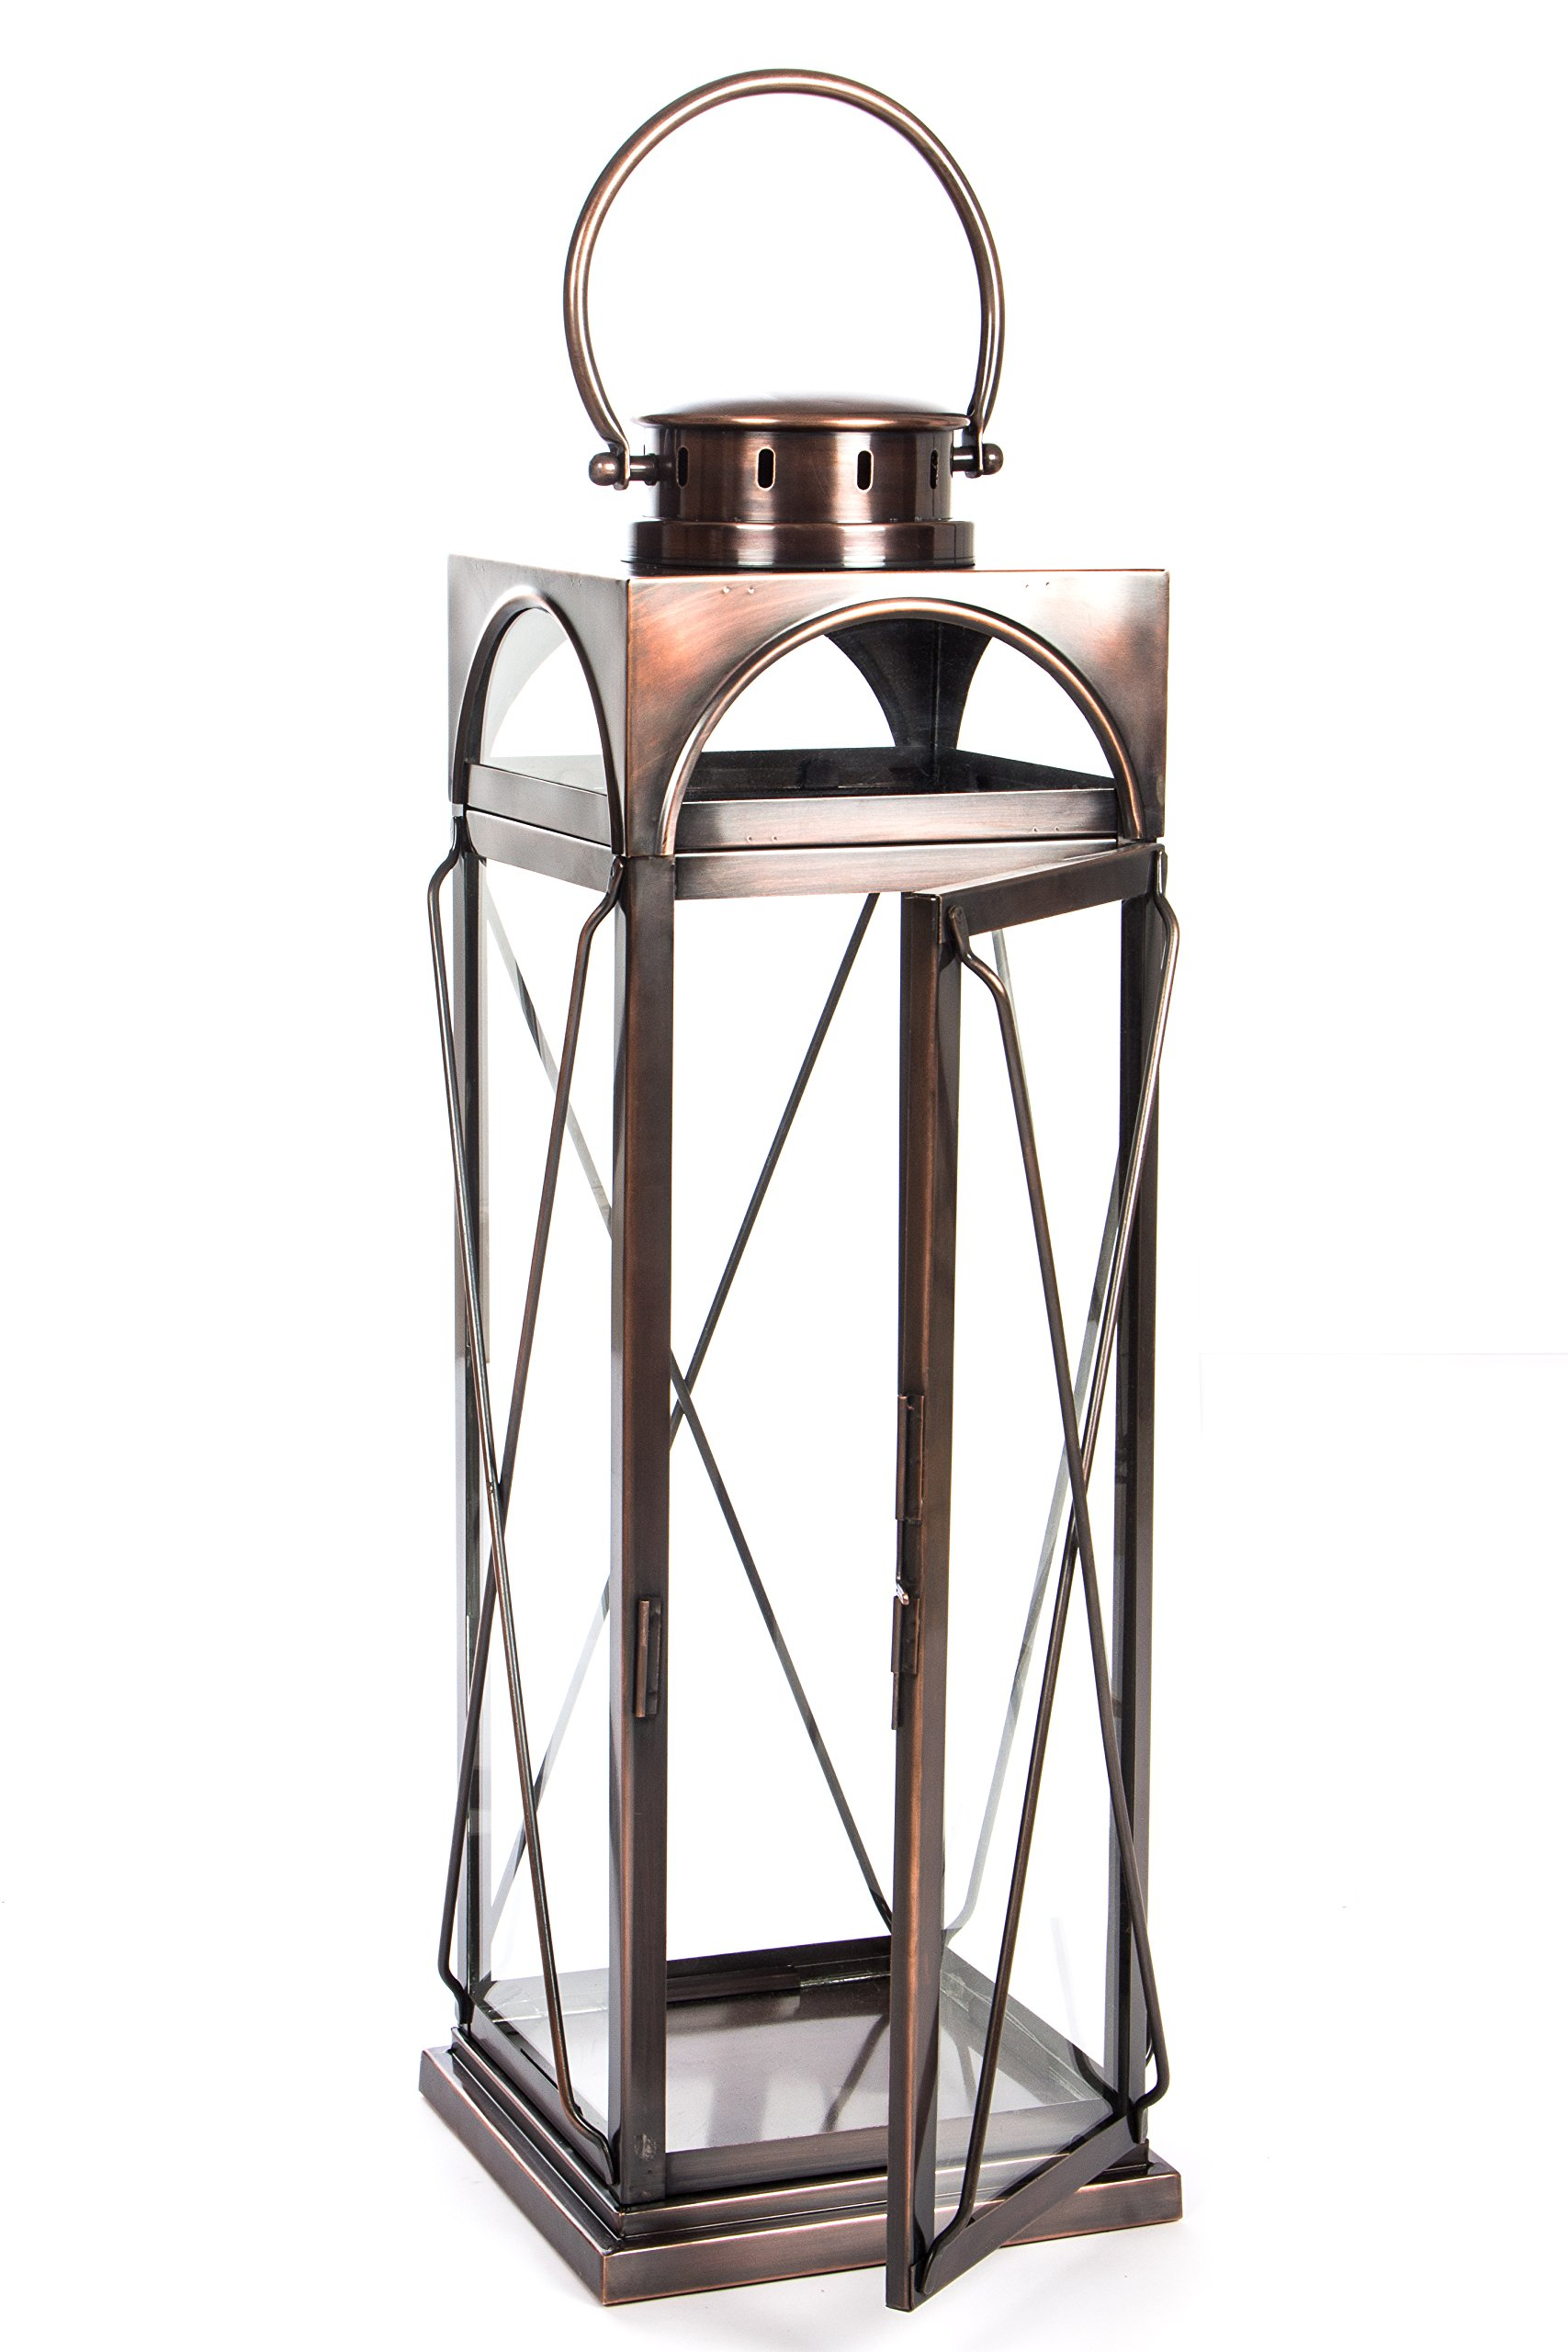 H Potter Decorative Lantern & Candle Holder - Outdoor Indoor Light Centerpiece with Antique Copper Finish & Glass - Stunning Décor for Home, Wedding, Parties - GAR609 (Large)